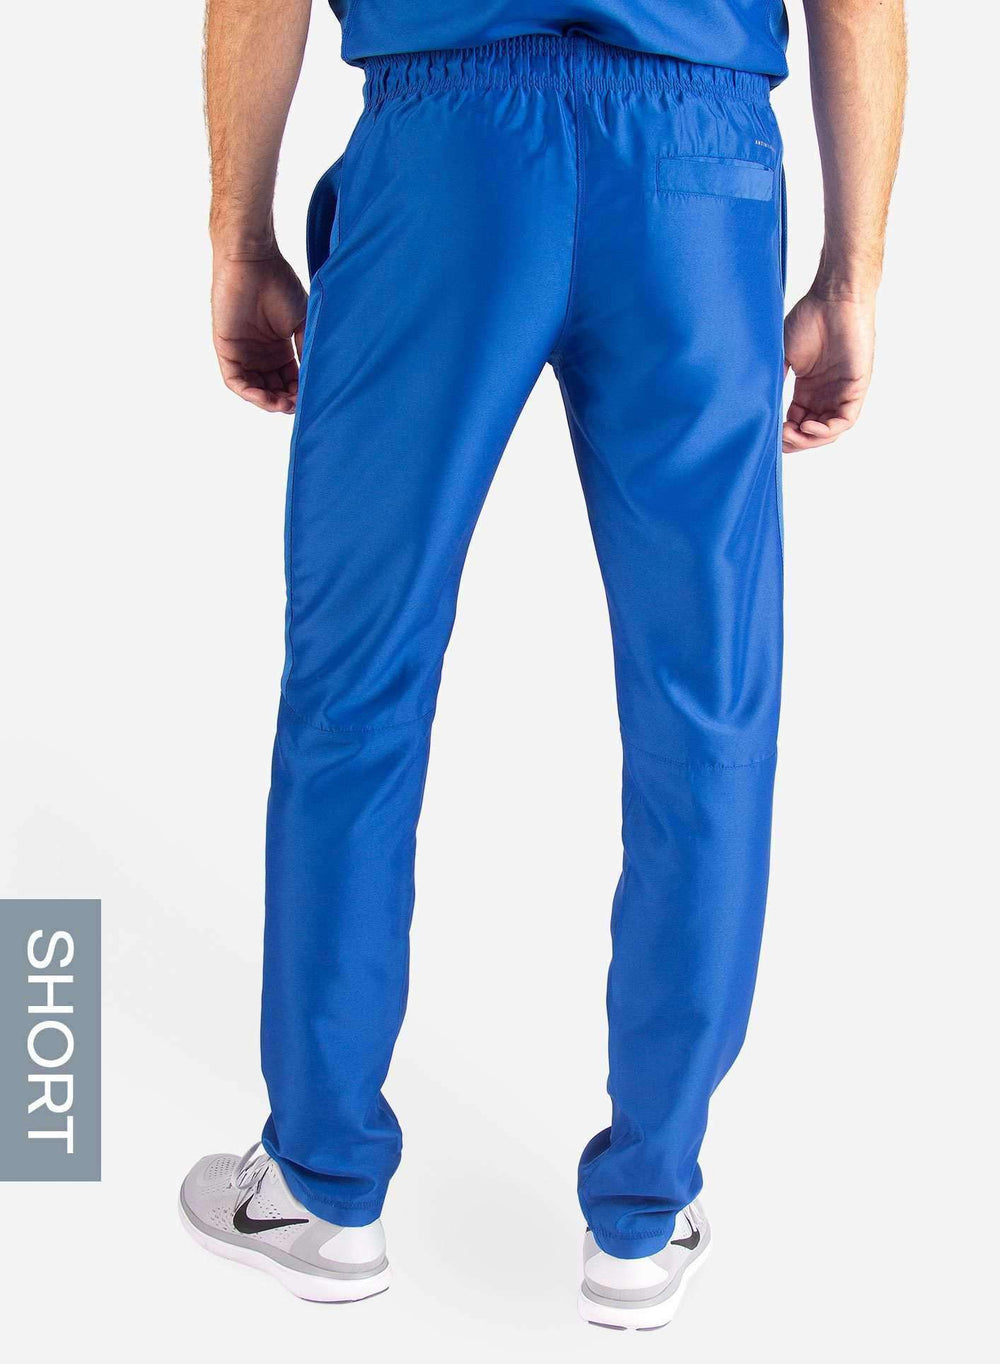 Men's Short Slim Fit Scrub Pants in Royal Blue back